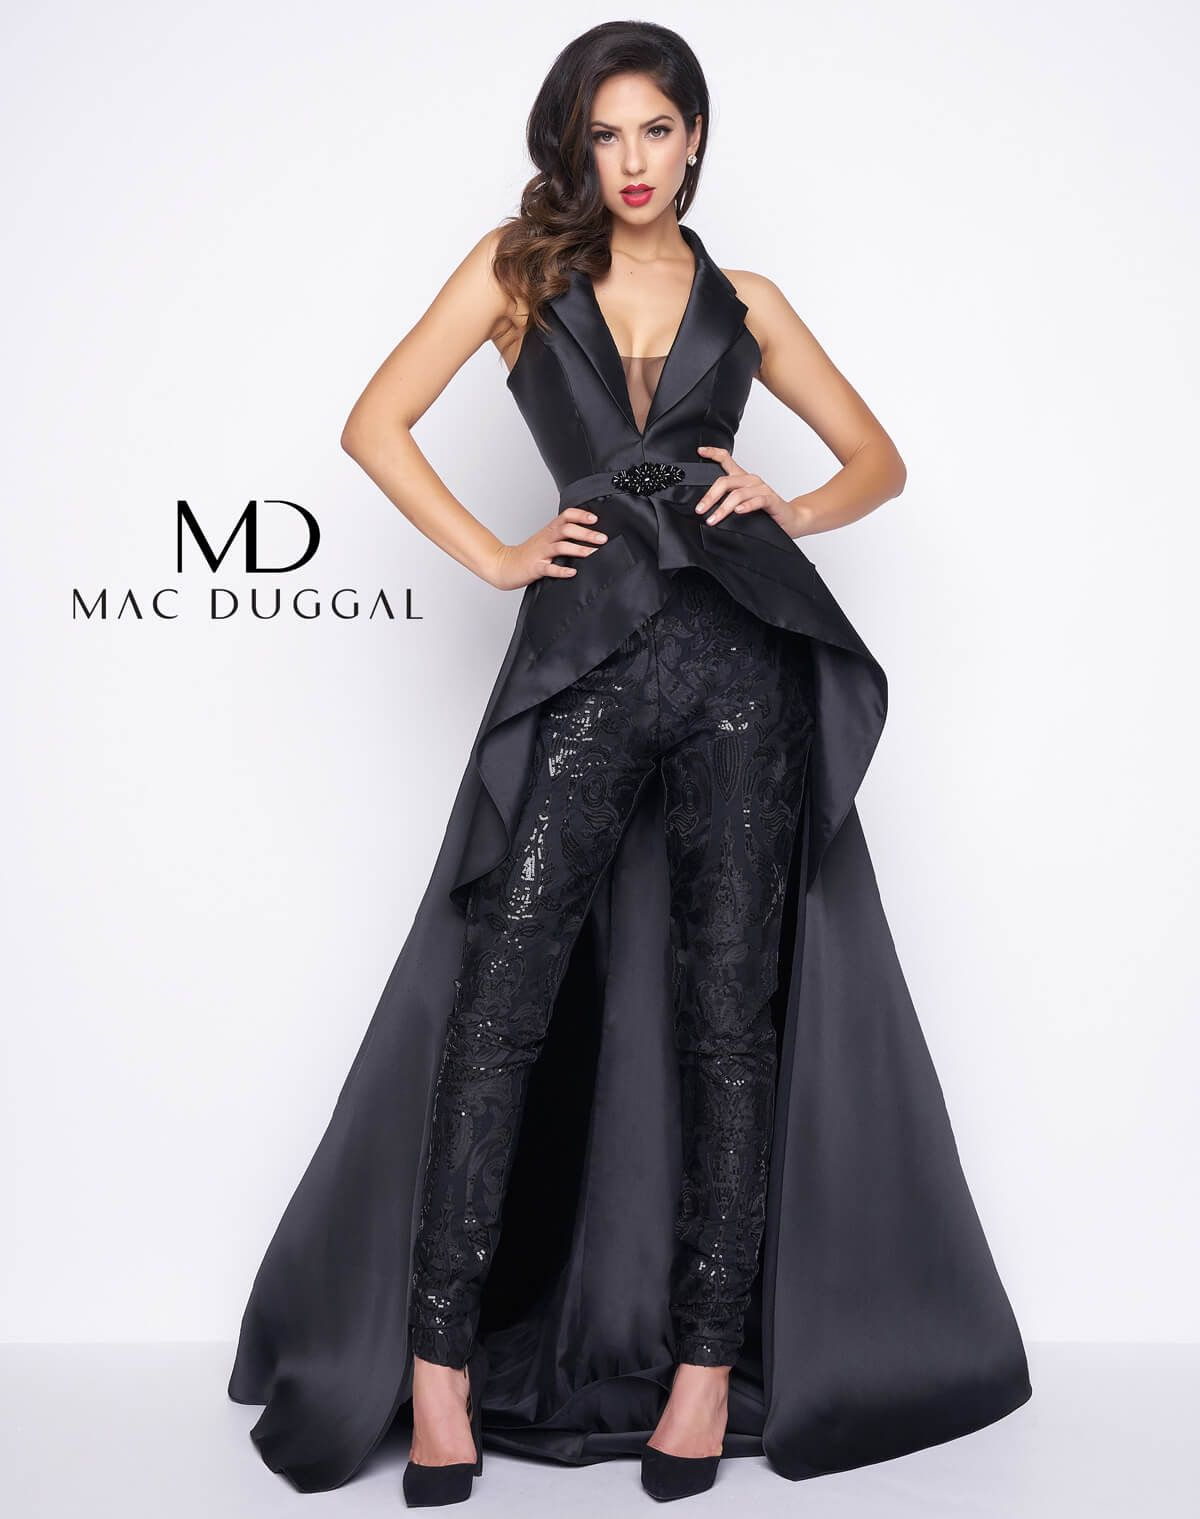 Ivory Zuhair Murad Jumpsuit Prom Dresses With Removable Skirt Red Carpet Strapless Lace Applique Corset Formal Evening Gowns Street Price Prom Dresses